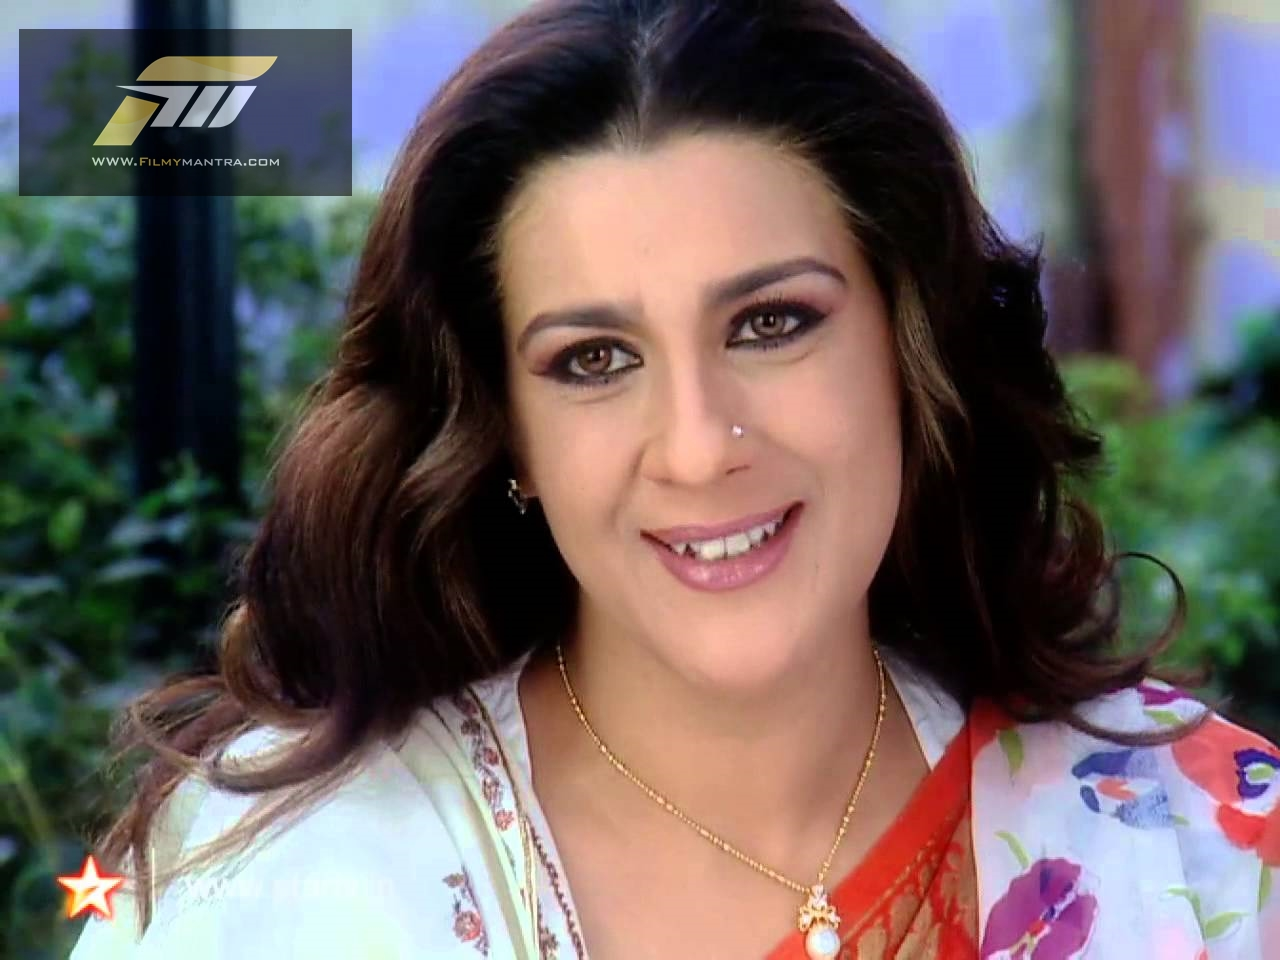 amrita singh hd and hot wallpapers images gallery download